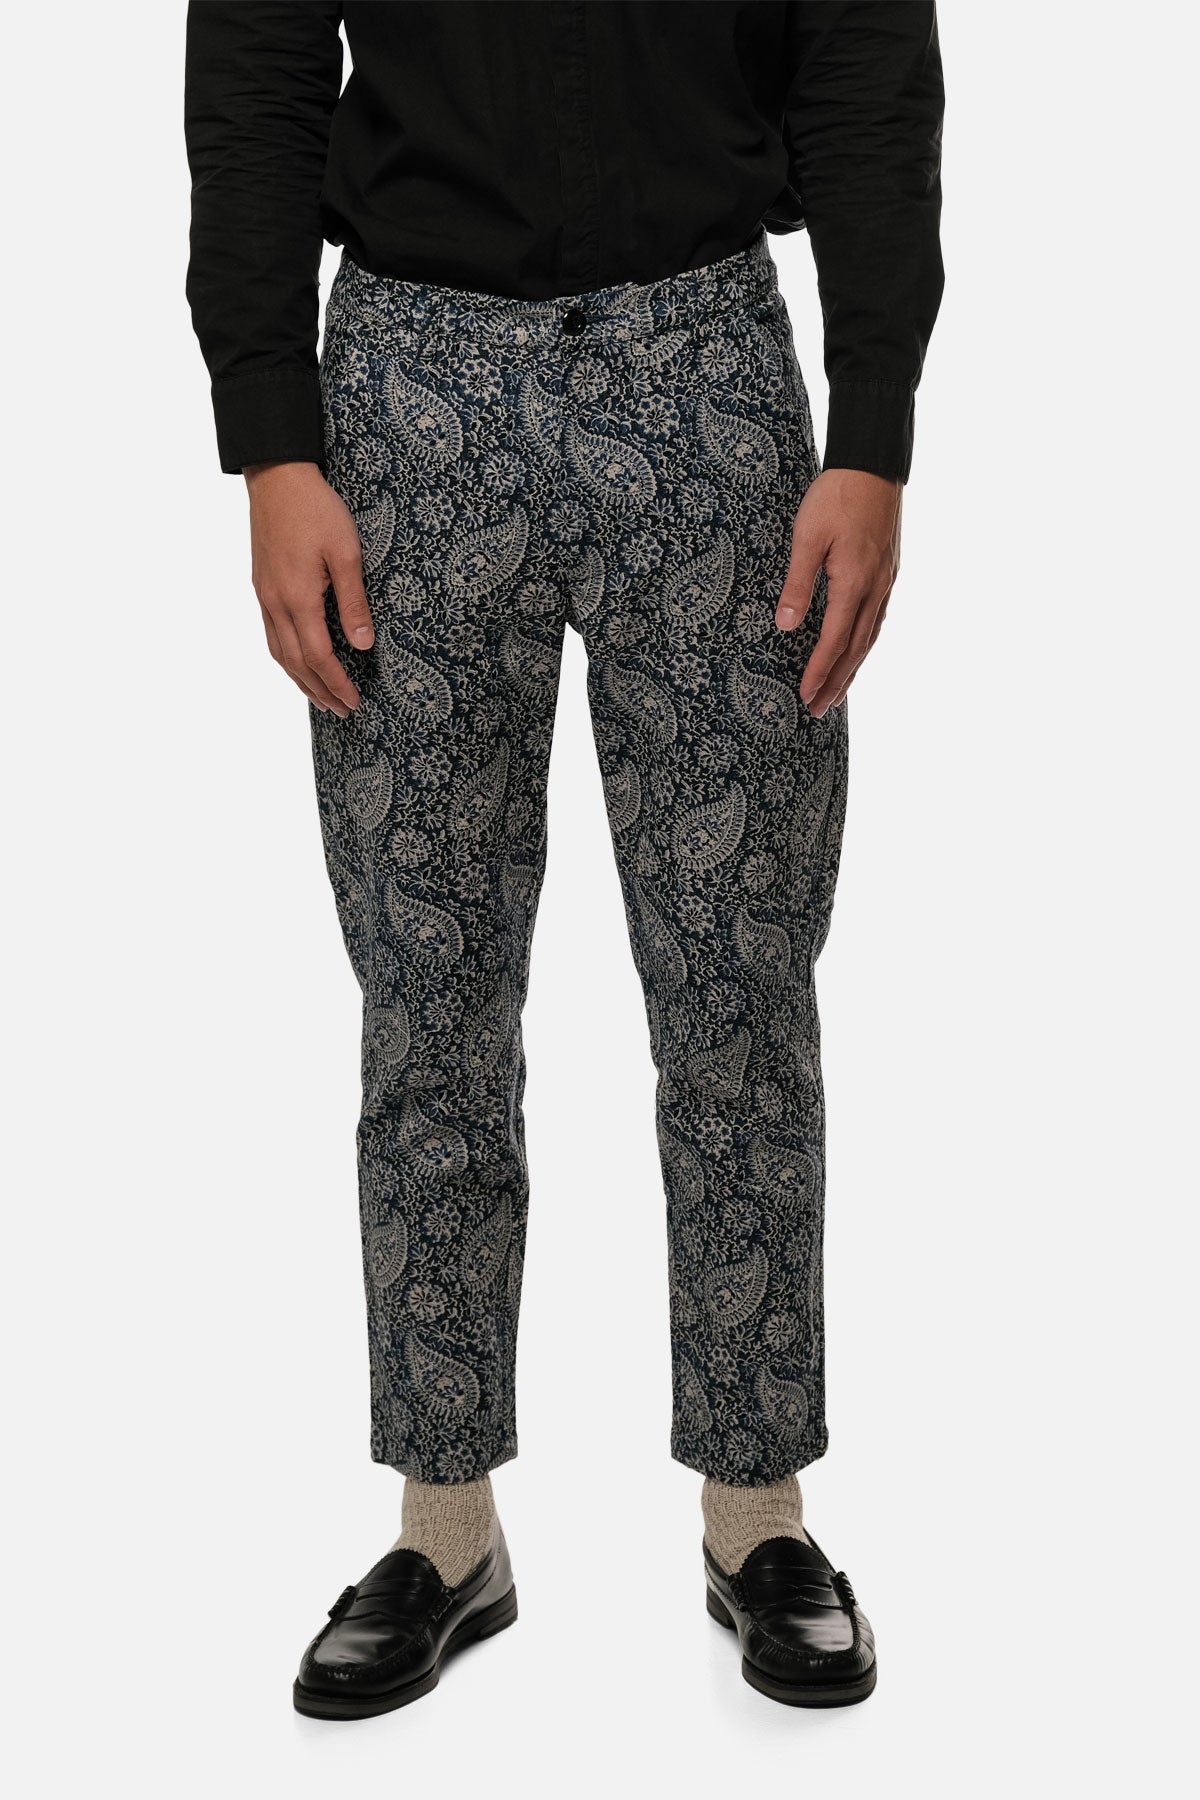 ATLAS TROUSER IN BLUE PAISLEY - Fortune Goods